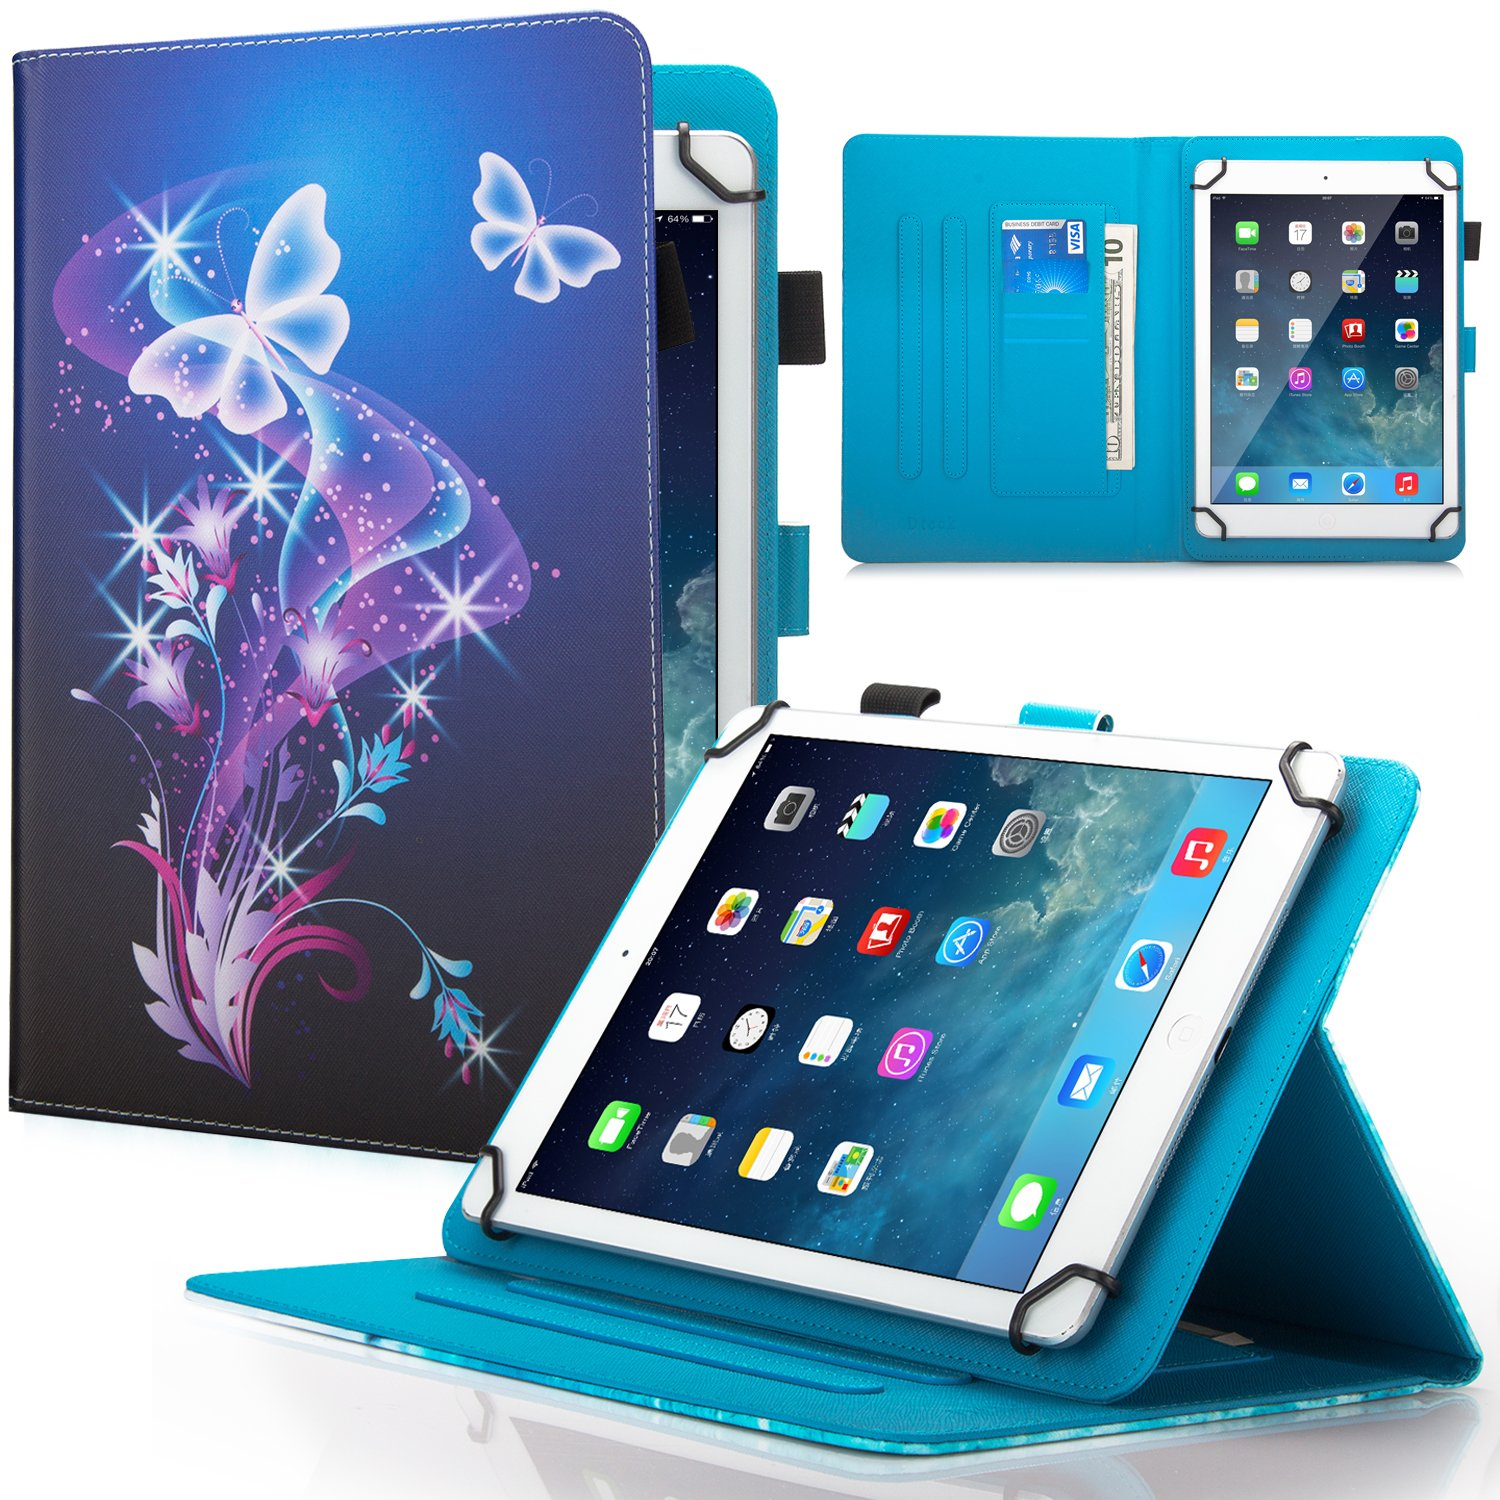 9.5-10.5 inch Universal Case - Dteck Anti-Slip Stand PU Leather Protective Case with Cards Slots Pretty Folio Wallet Slim Cover for All 9.7 10.1 10.5 inch Apple Samsung Lenovo Huawei Tablet-Butterfly